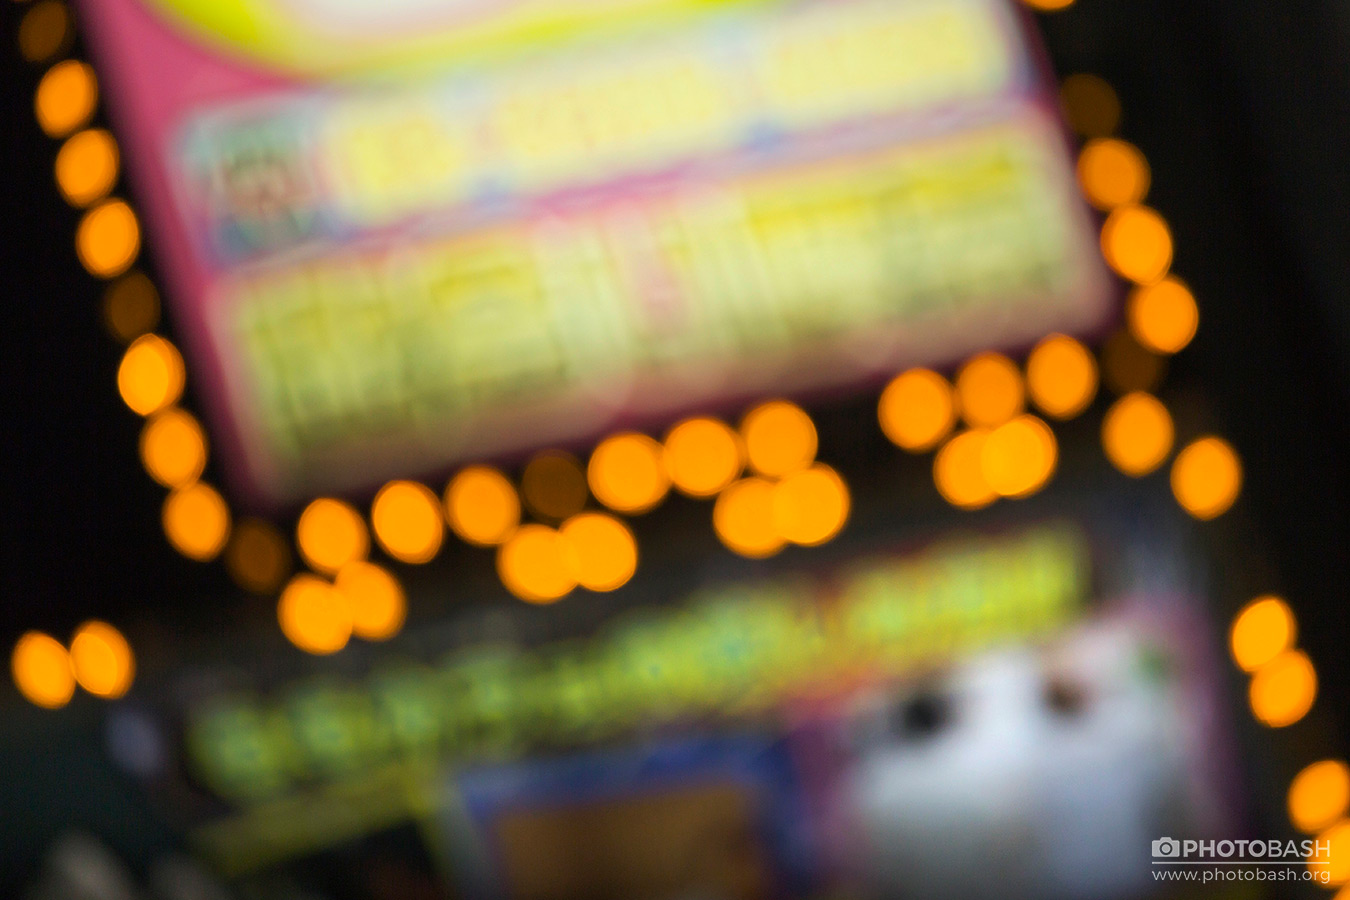 Neon-Bokeh-Blurry-LED-Lights.jpg